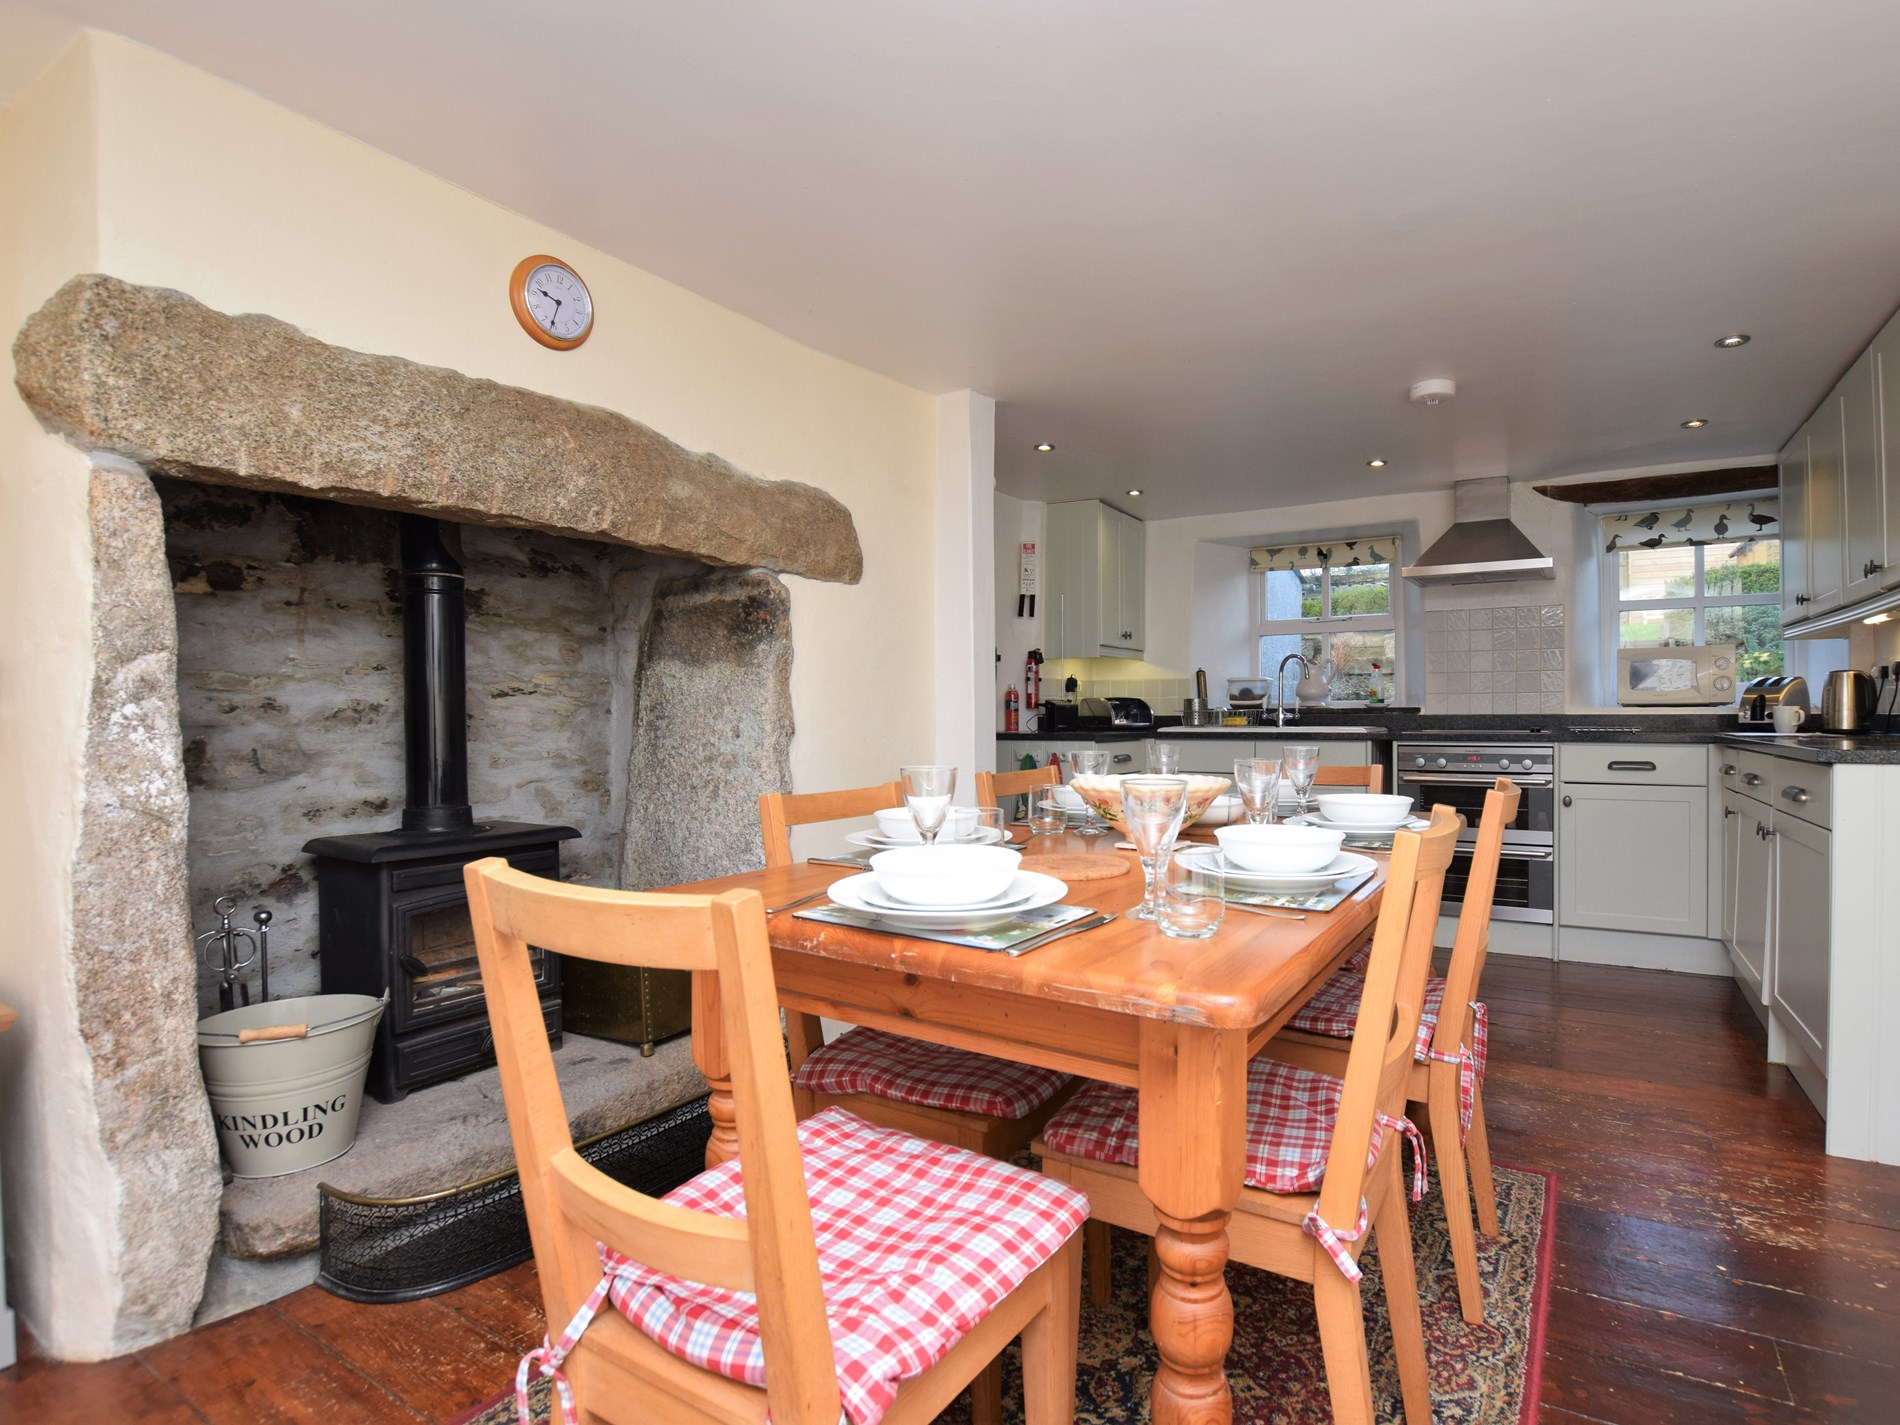 3 Bedroom Cottage in Camelford, Cornwall